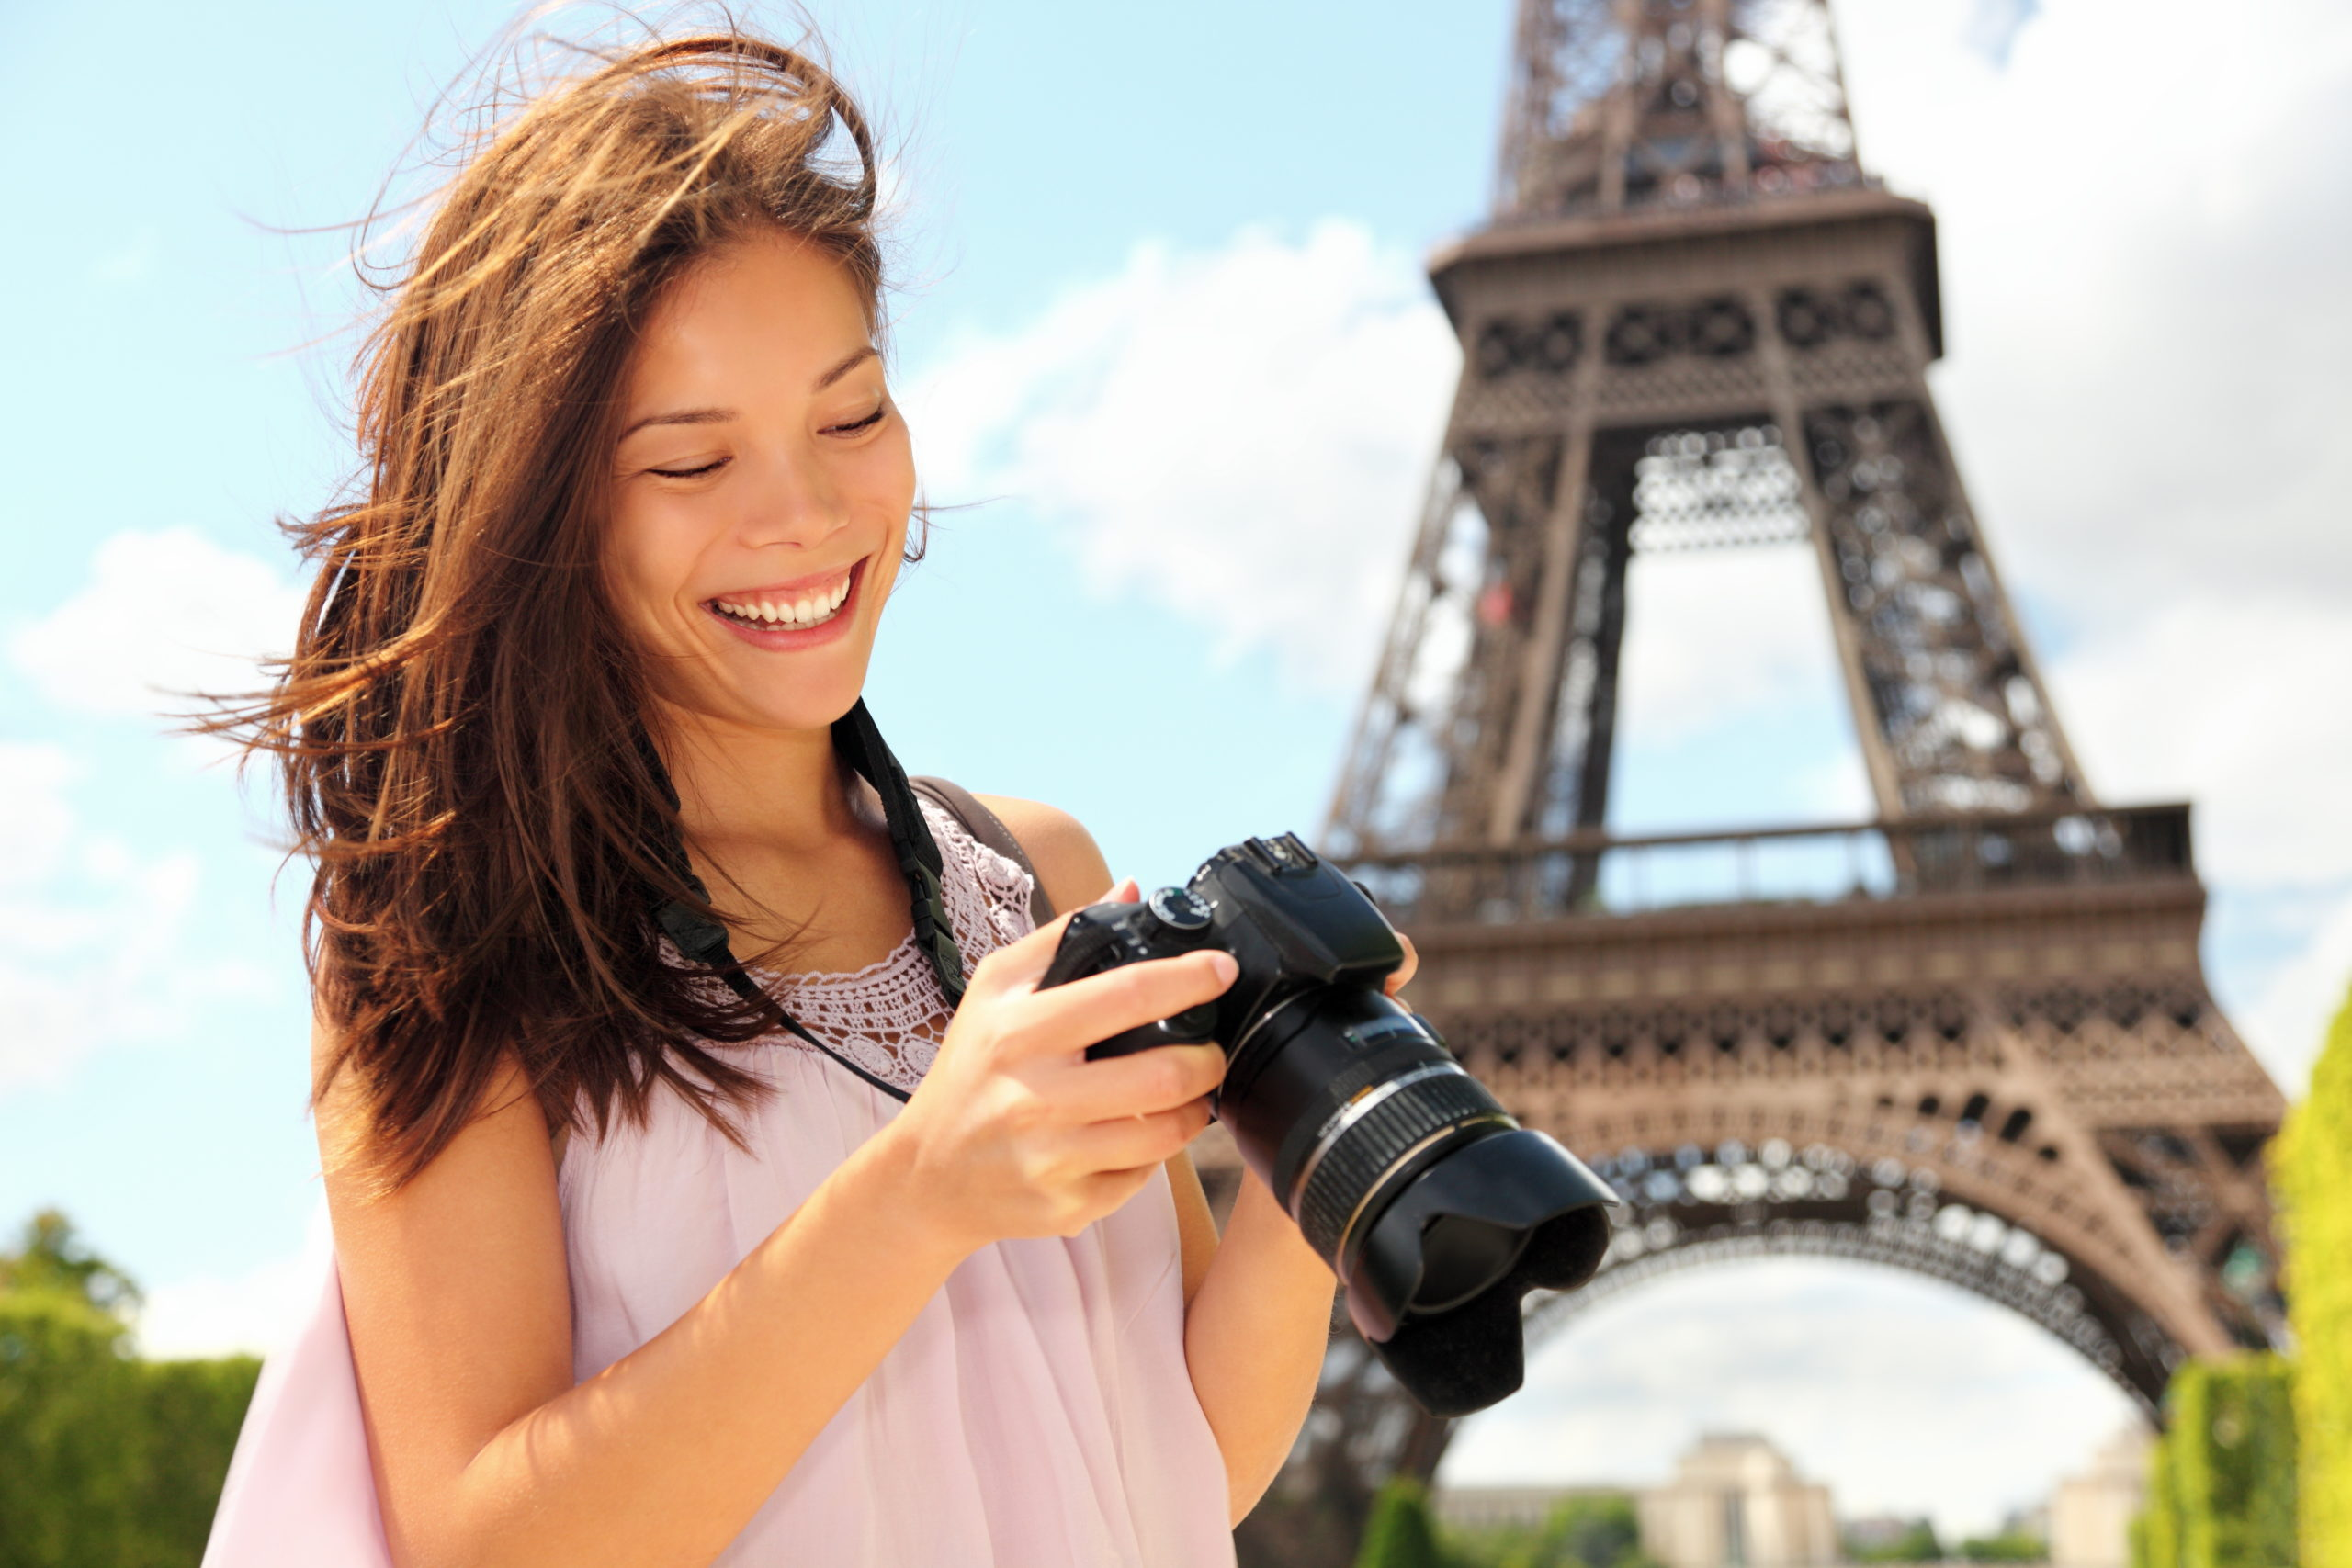 Paris Eiffel Tower tourist with camera taking pictures in front of the Eiffel tower, Paris, France. Young photographer woman in her 20s. Candid.